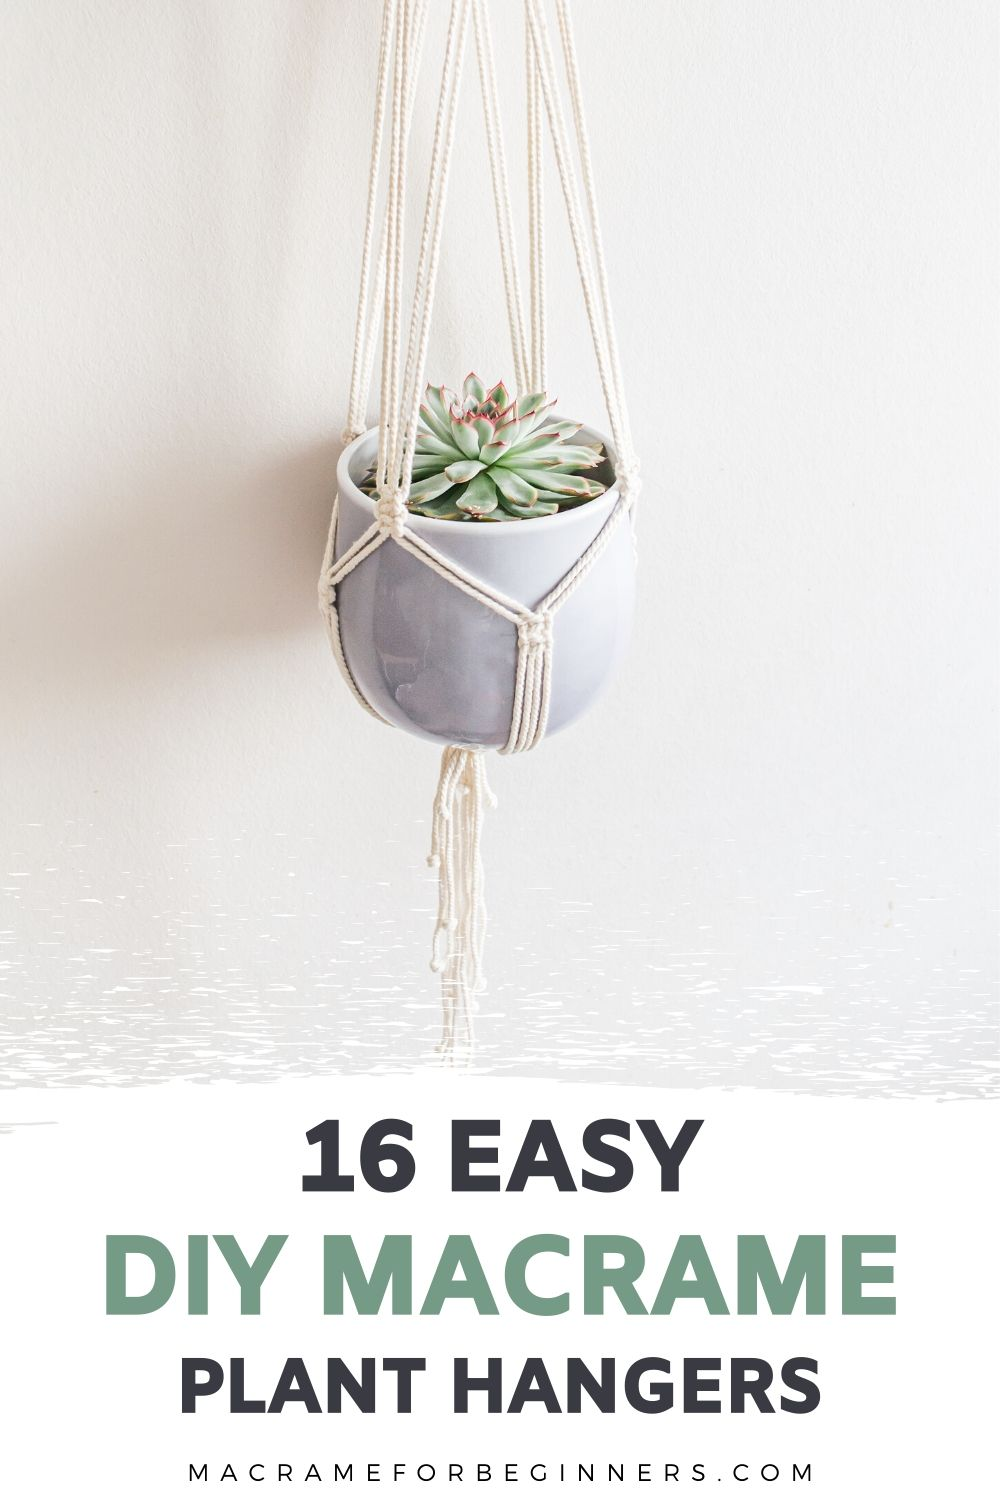 16 Easy DIY Macrame Plant Hangers for Beginners - Macrame for Beginners